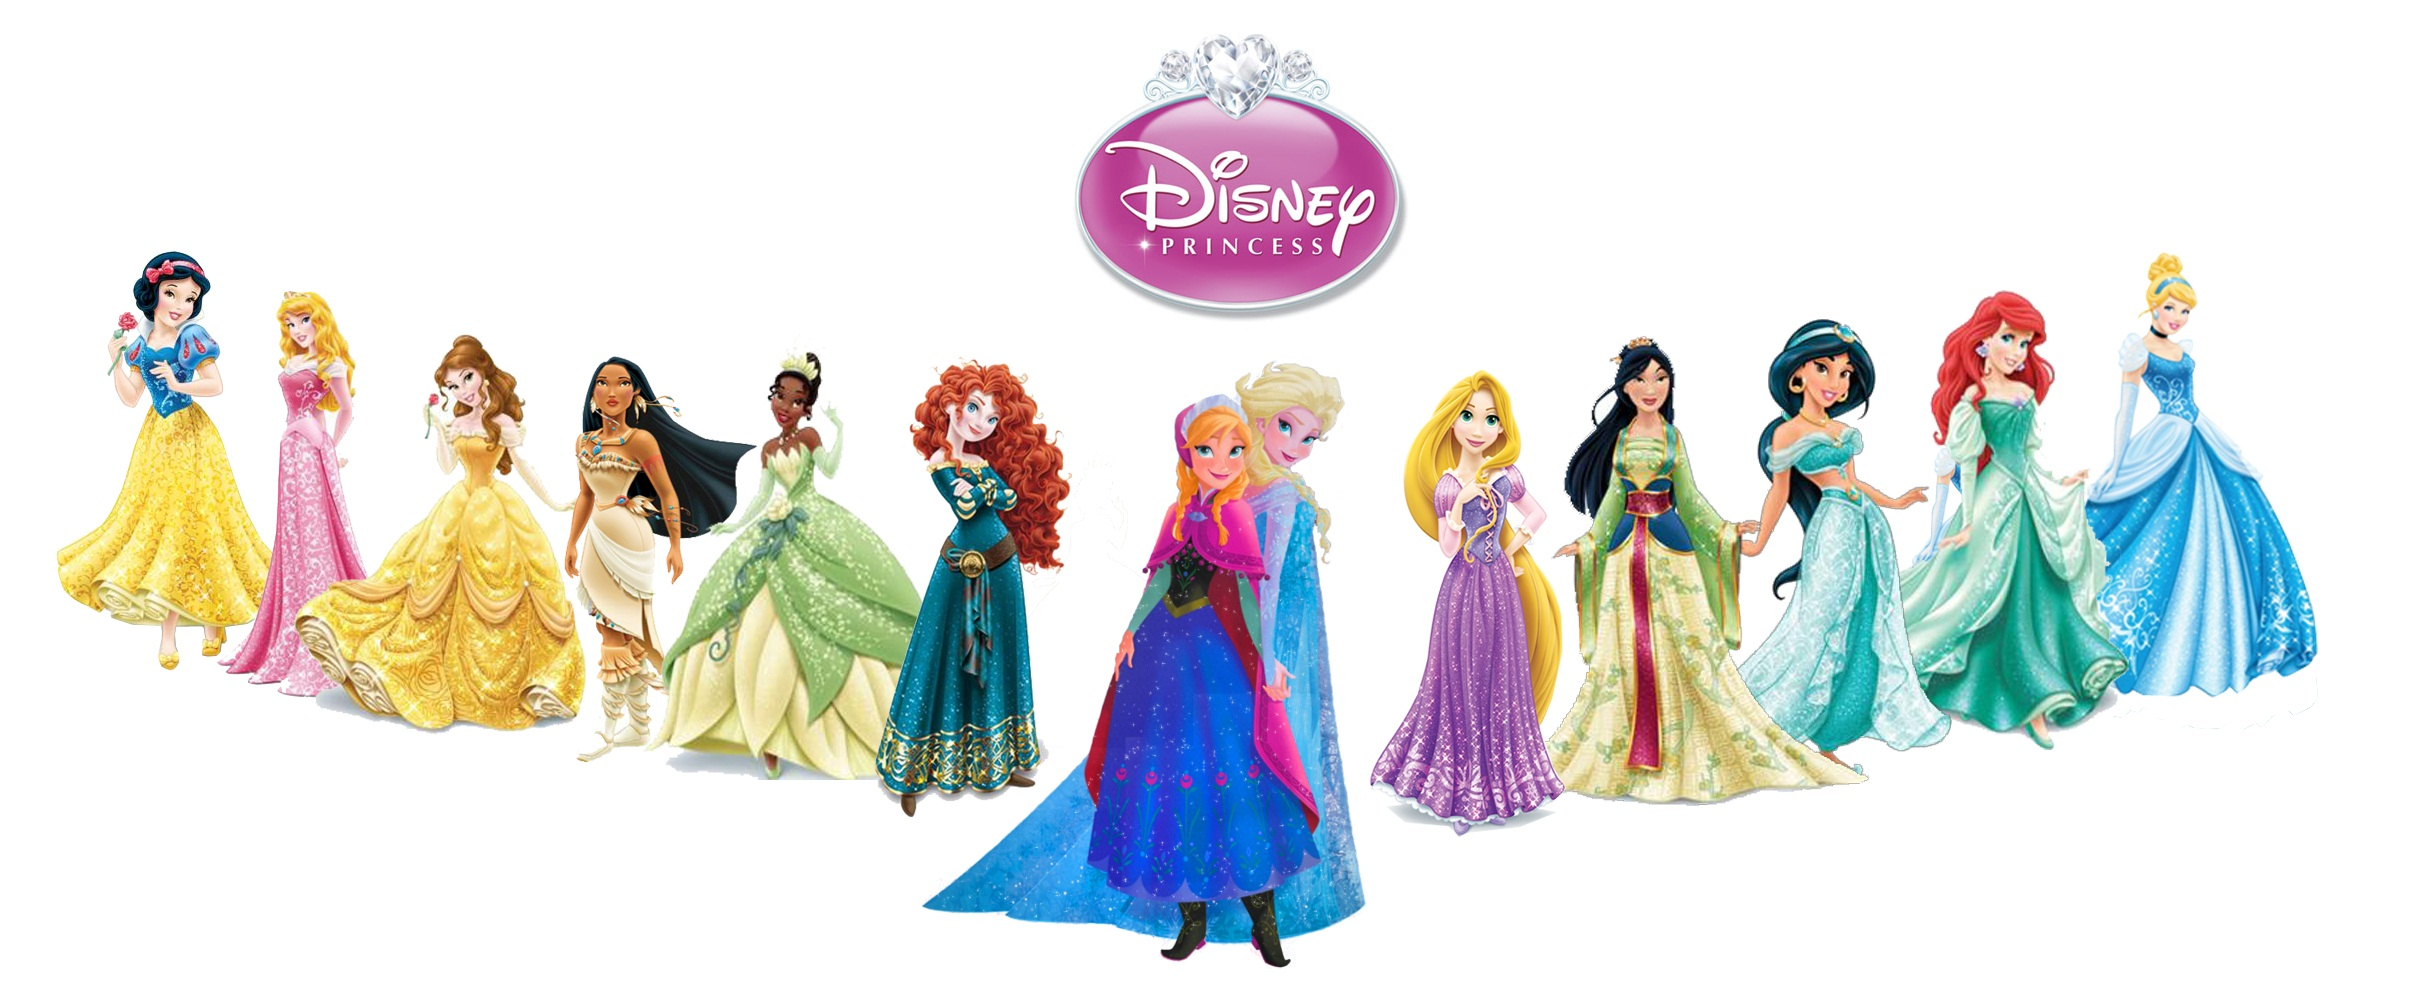 Which Disney Princess Character Are You